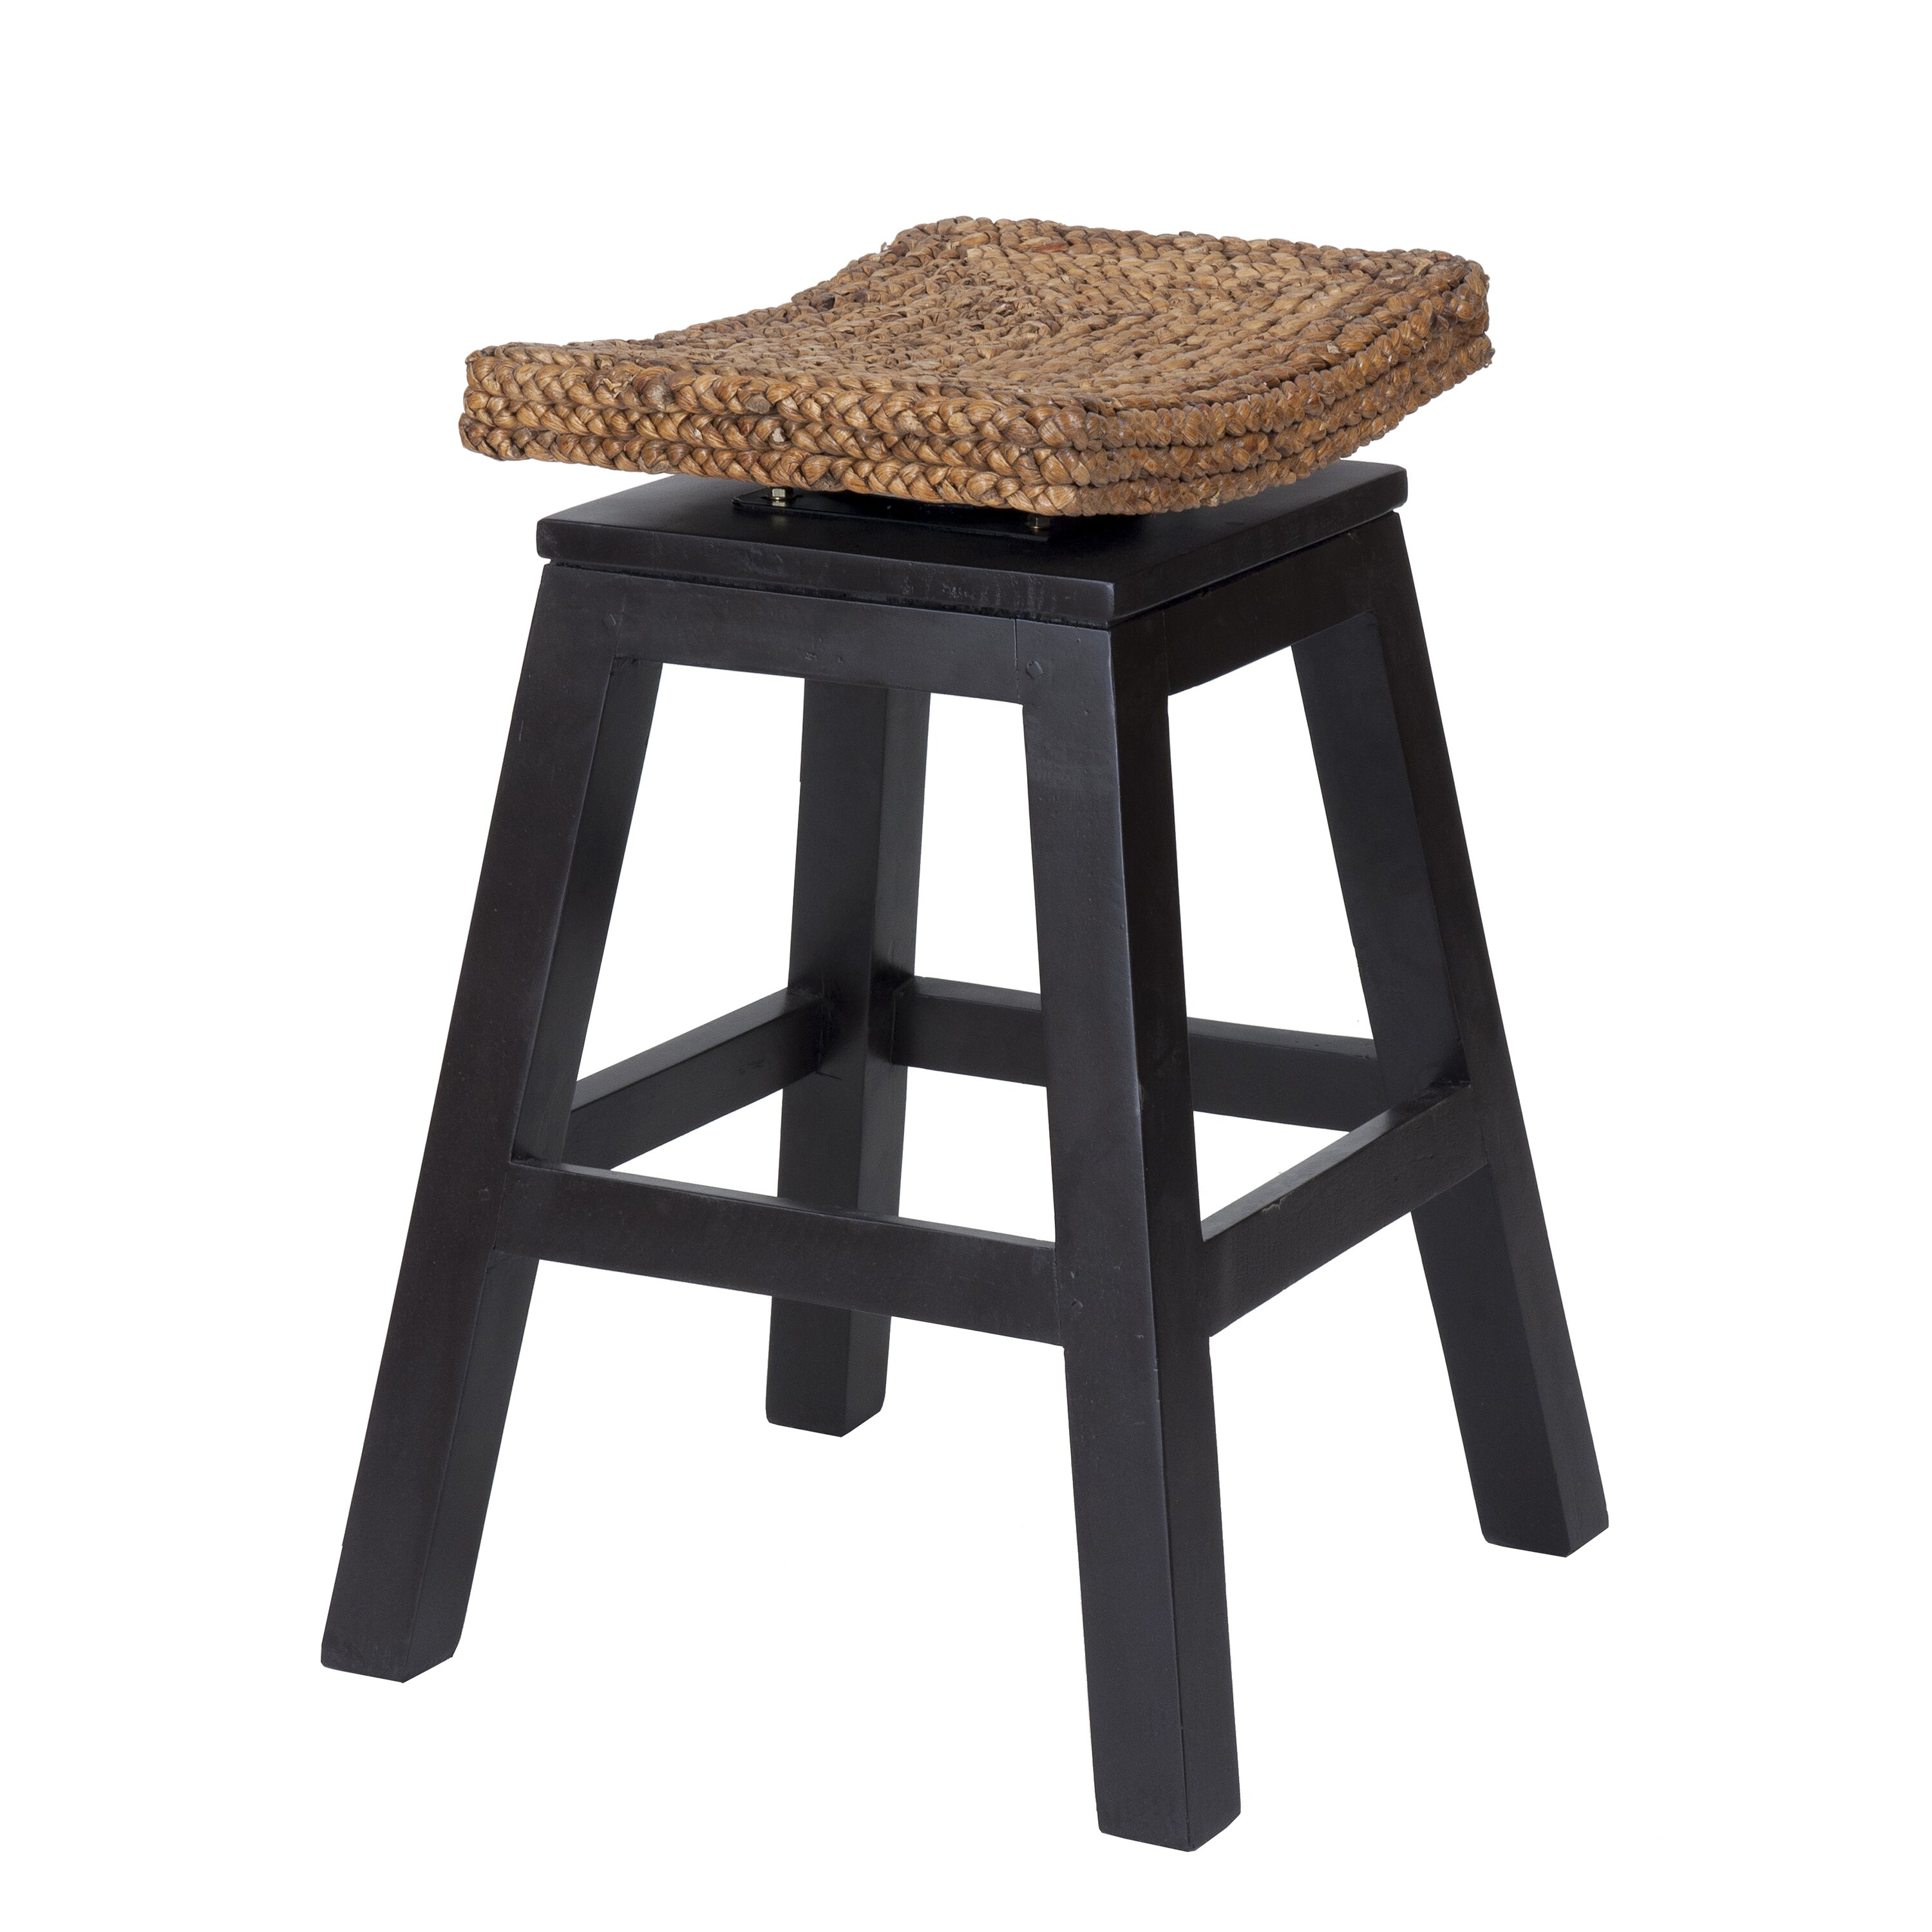 Bay Isle Home Heron Swivel Bar Stool Amp Reviews Wayfair Ca